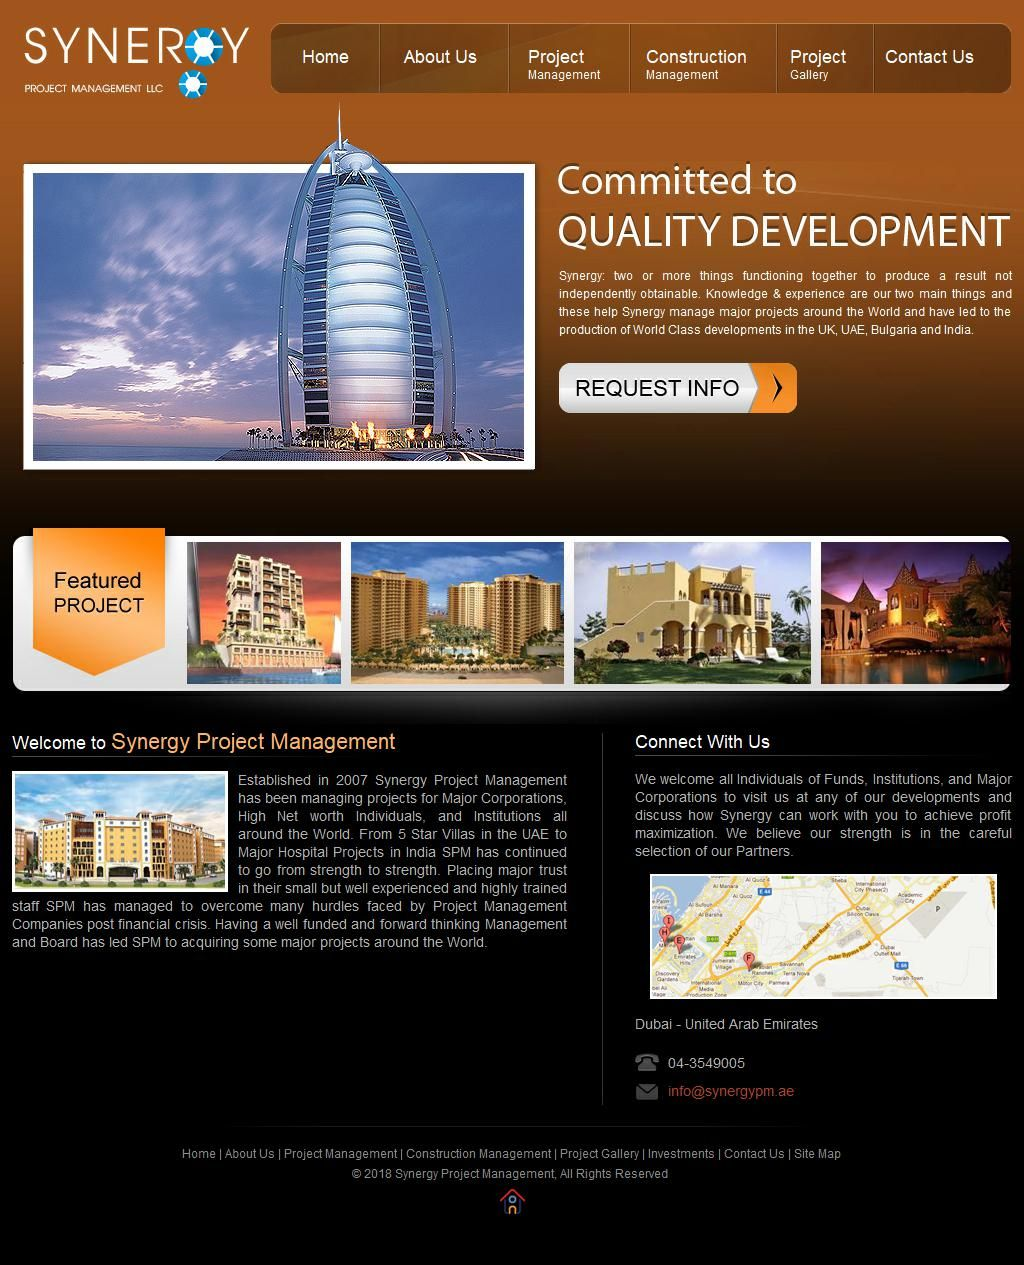 Synergy Engineering Consultancy Company Code Business Tower 10 6 Street 8 Floor Al Barsha 1 373 Hadaeq Mohammed Companies In Dubai Dubai Local Businesses